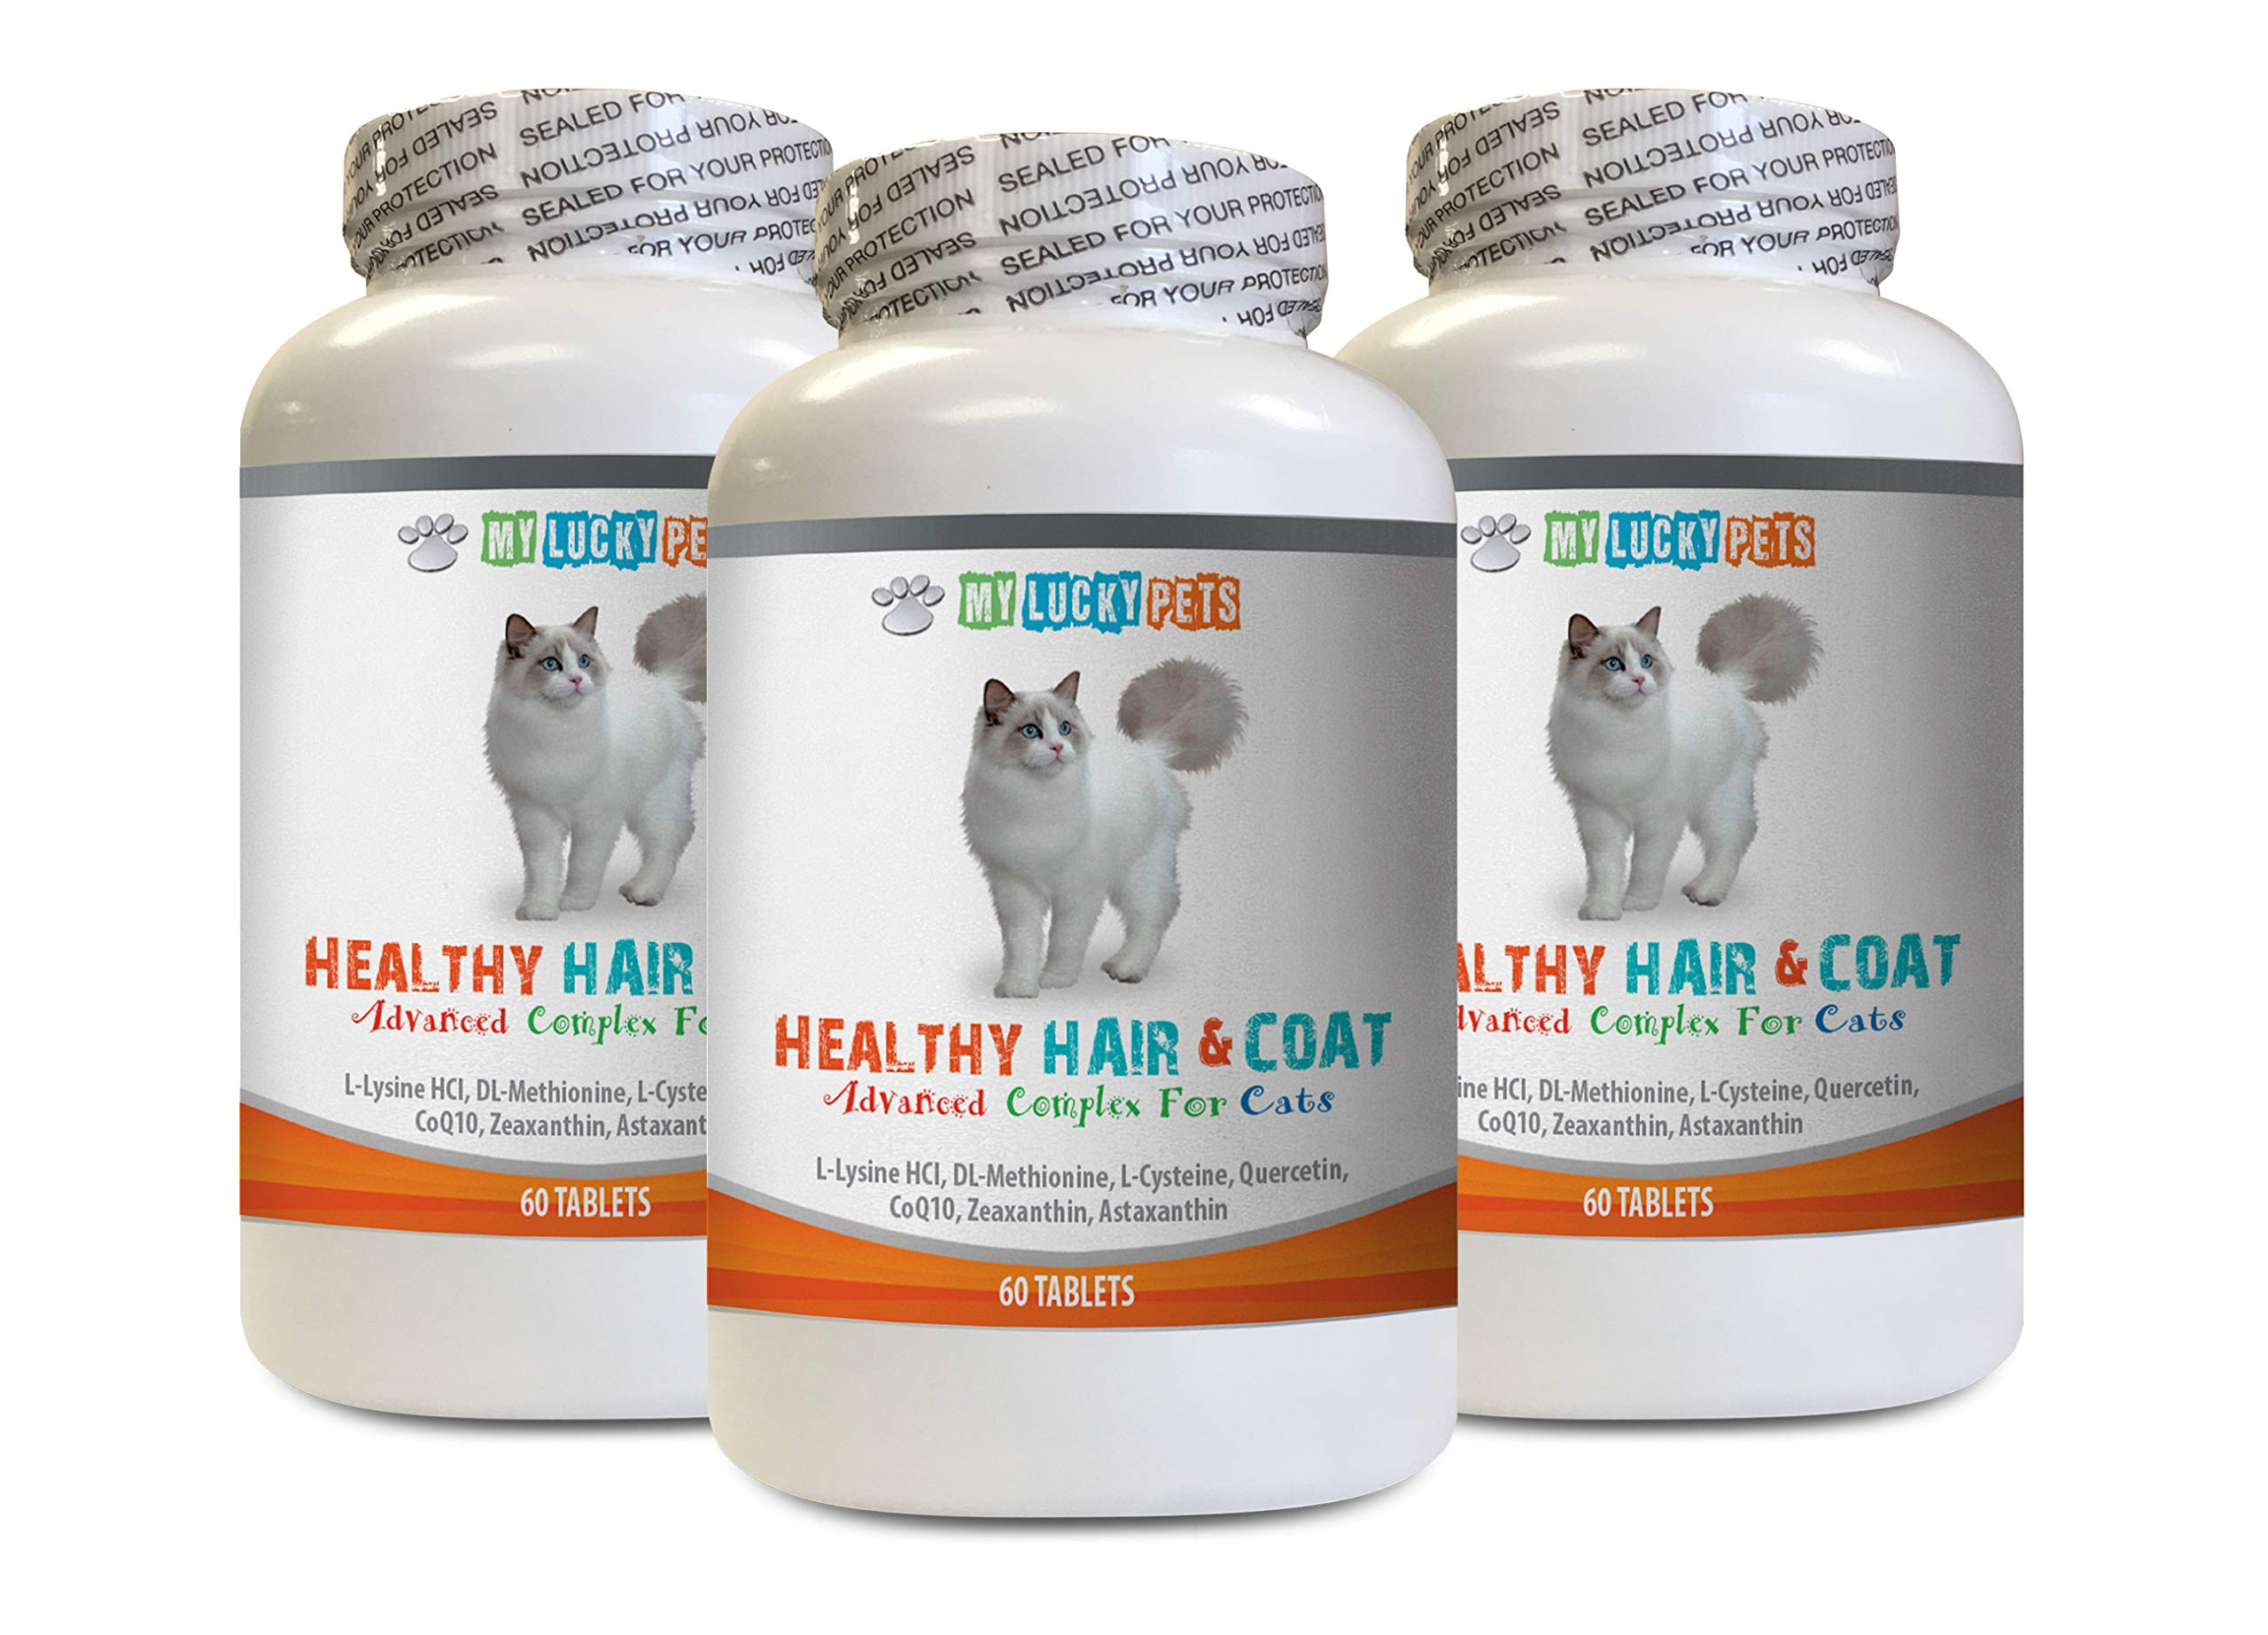 MY LUCKY PETS LLC Cats Immune Support - Cats Healthy Hair and Coat - Good Immune Response - Nail Health - Shiny Coat - Senior cat Vitamins - 3 Bottles (180 Tablets) by MY LUCKY PETS LLC